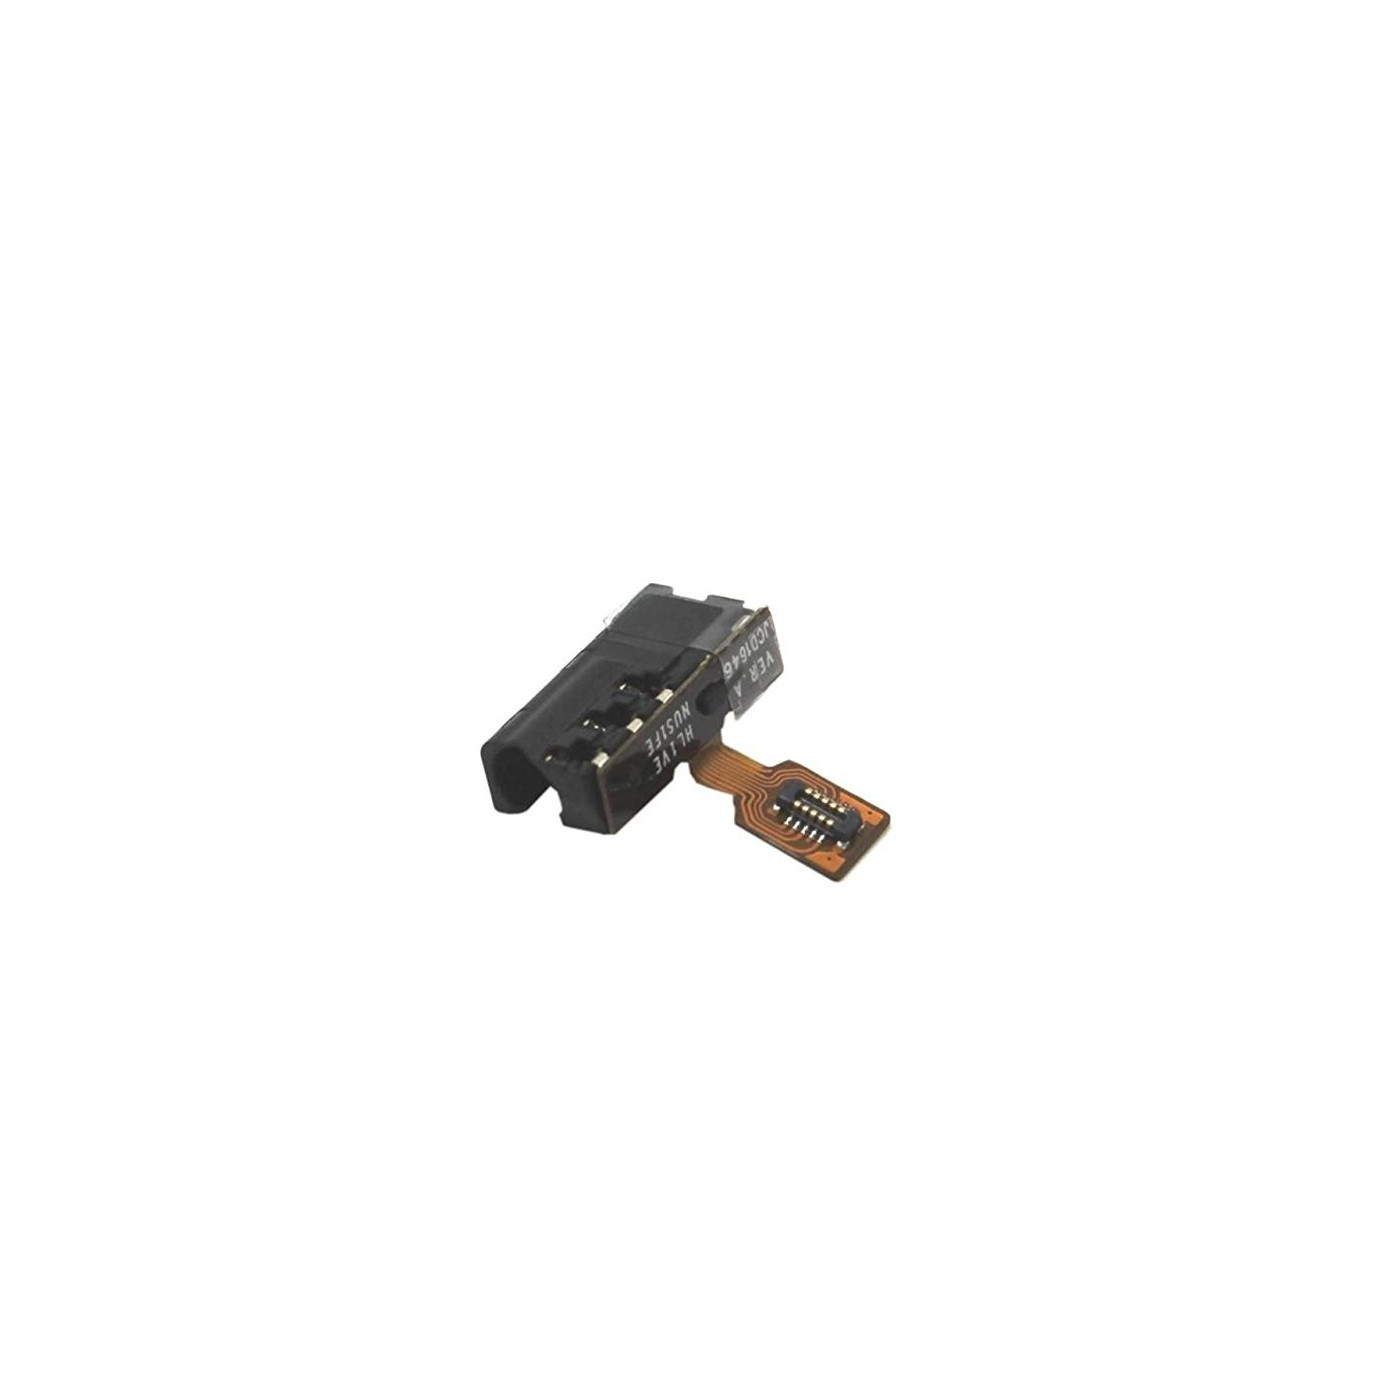 Flat flex Audio jack for HUAWEI P9 lite replacement headset